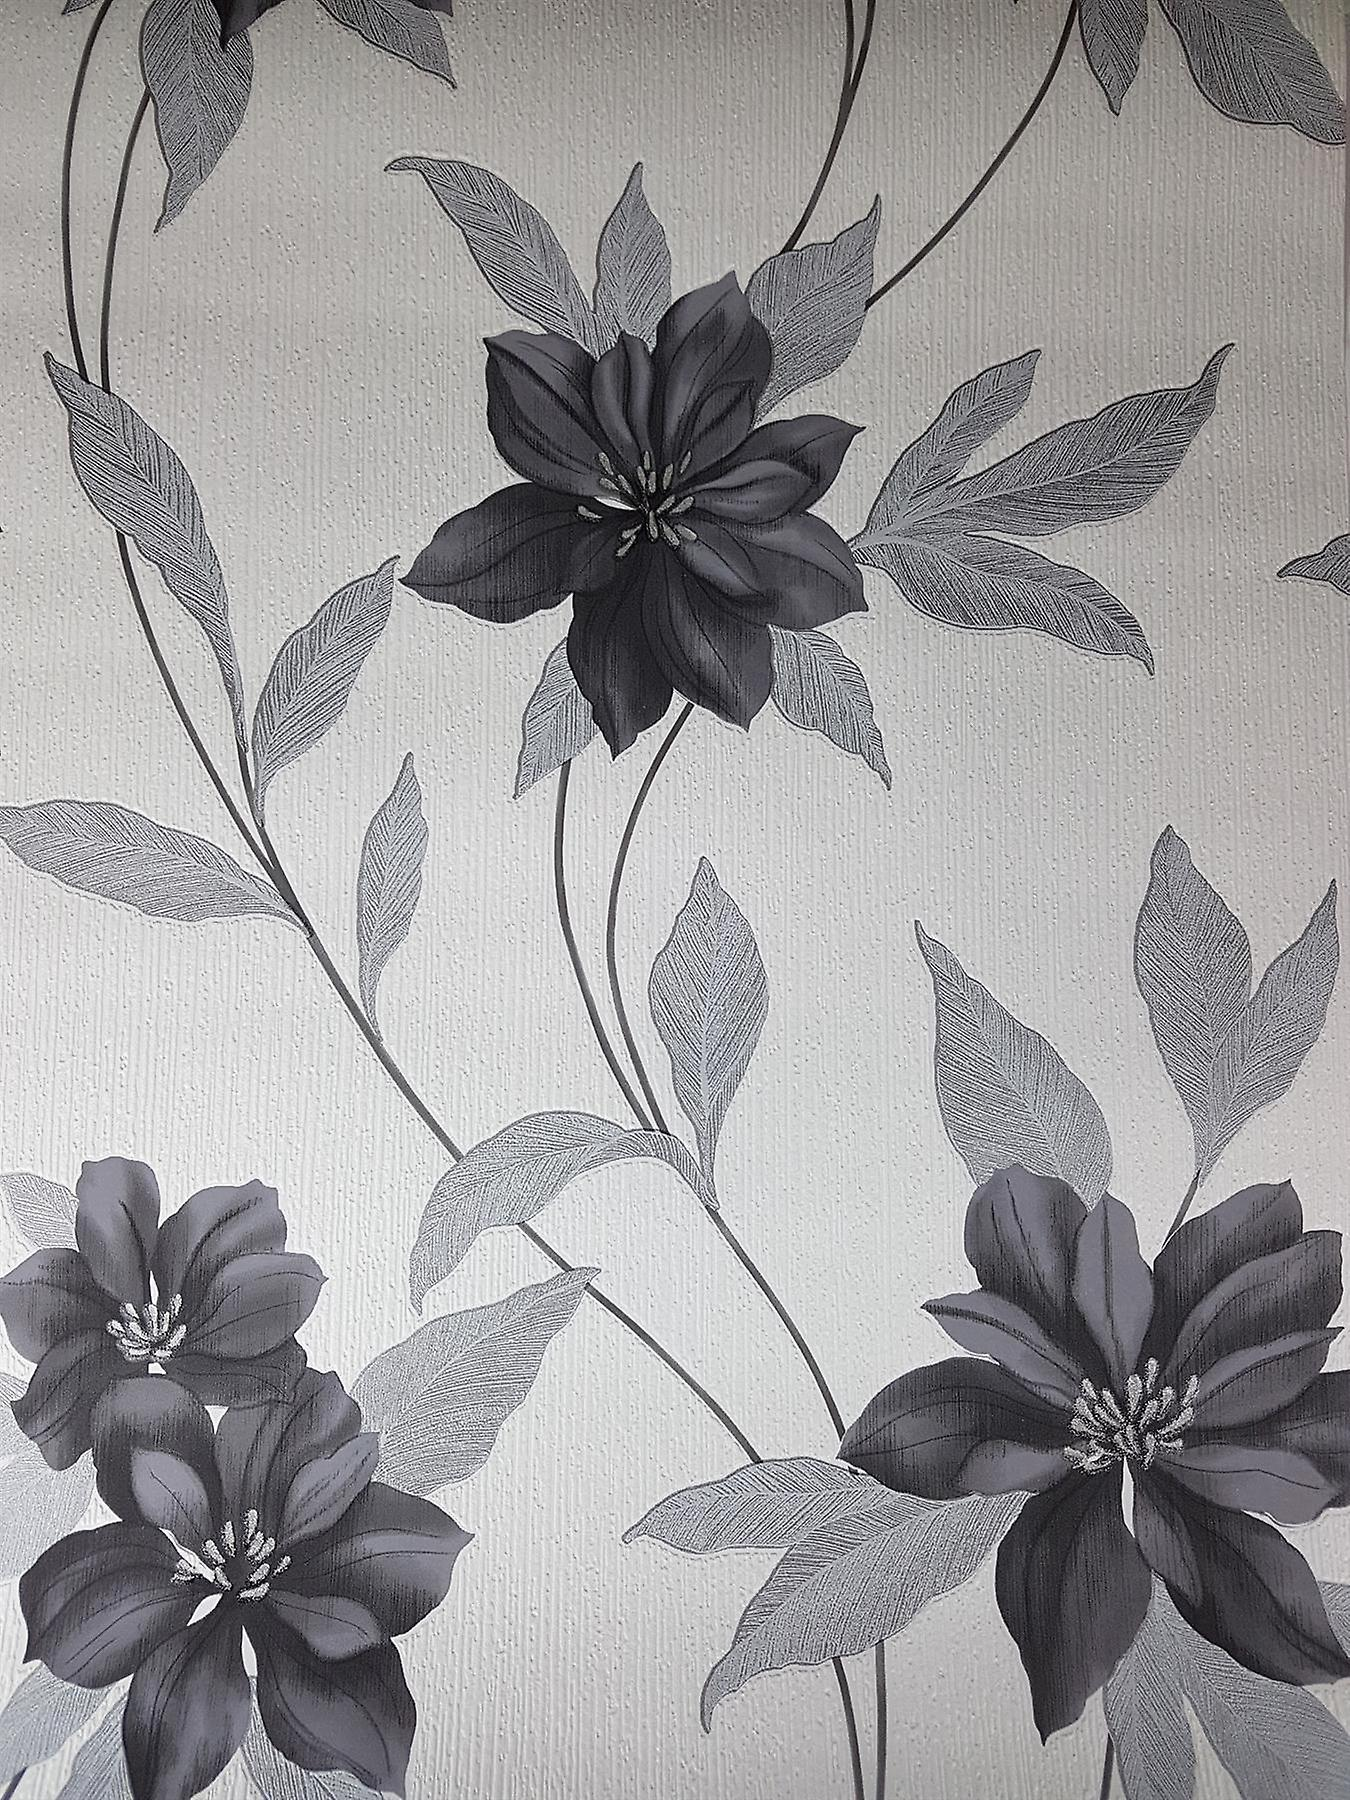 Spring Black Flower Glitter Wallpaper Floral Black White Textured Vinyl Erismann